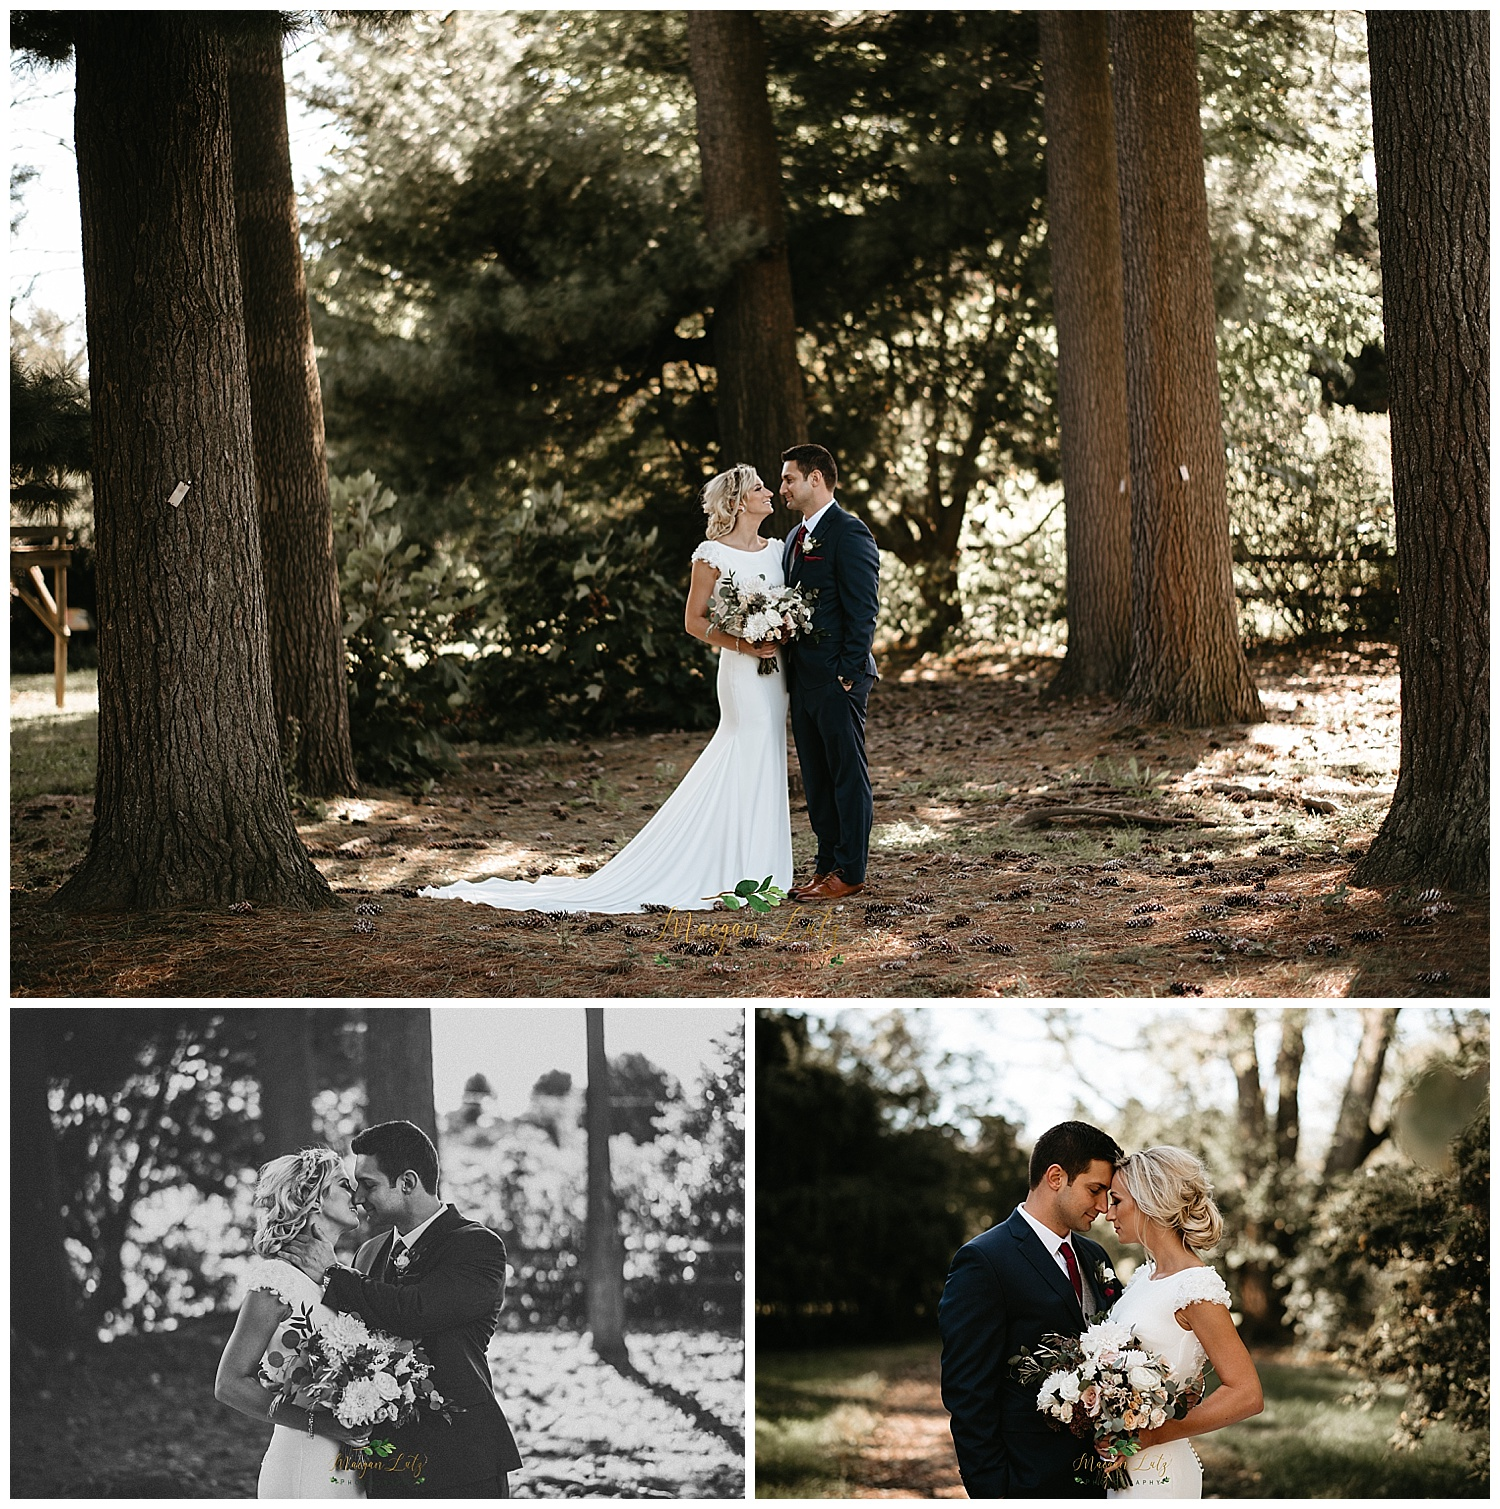 NEPA-wedding-photographer-at-Tyler-Arboretum-Media-PA_0018.jpg